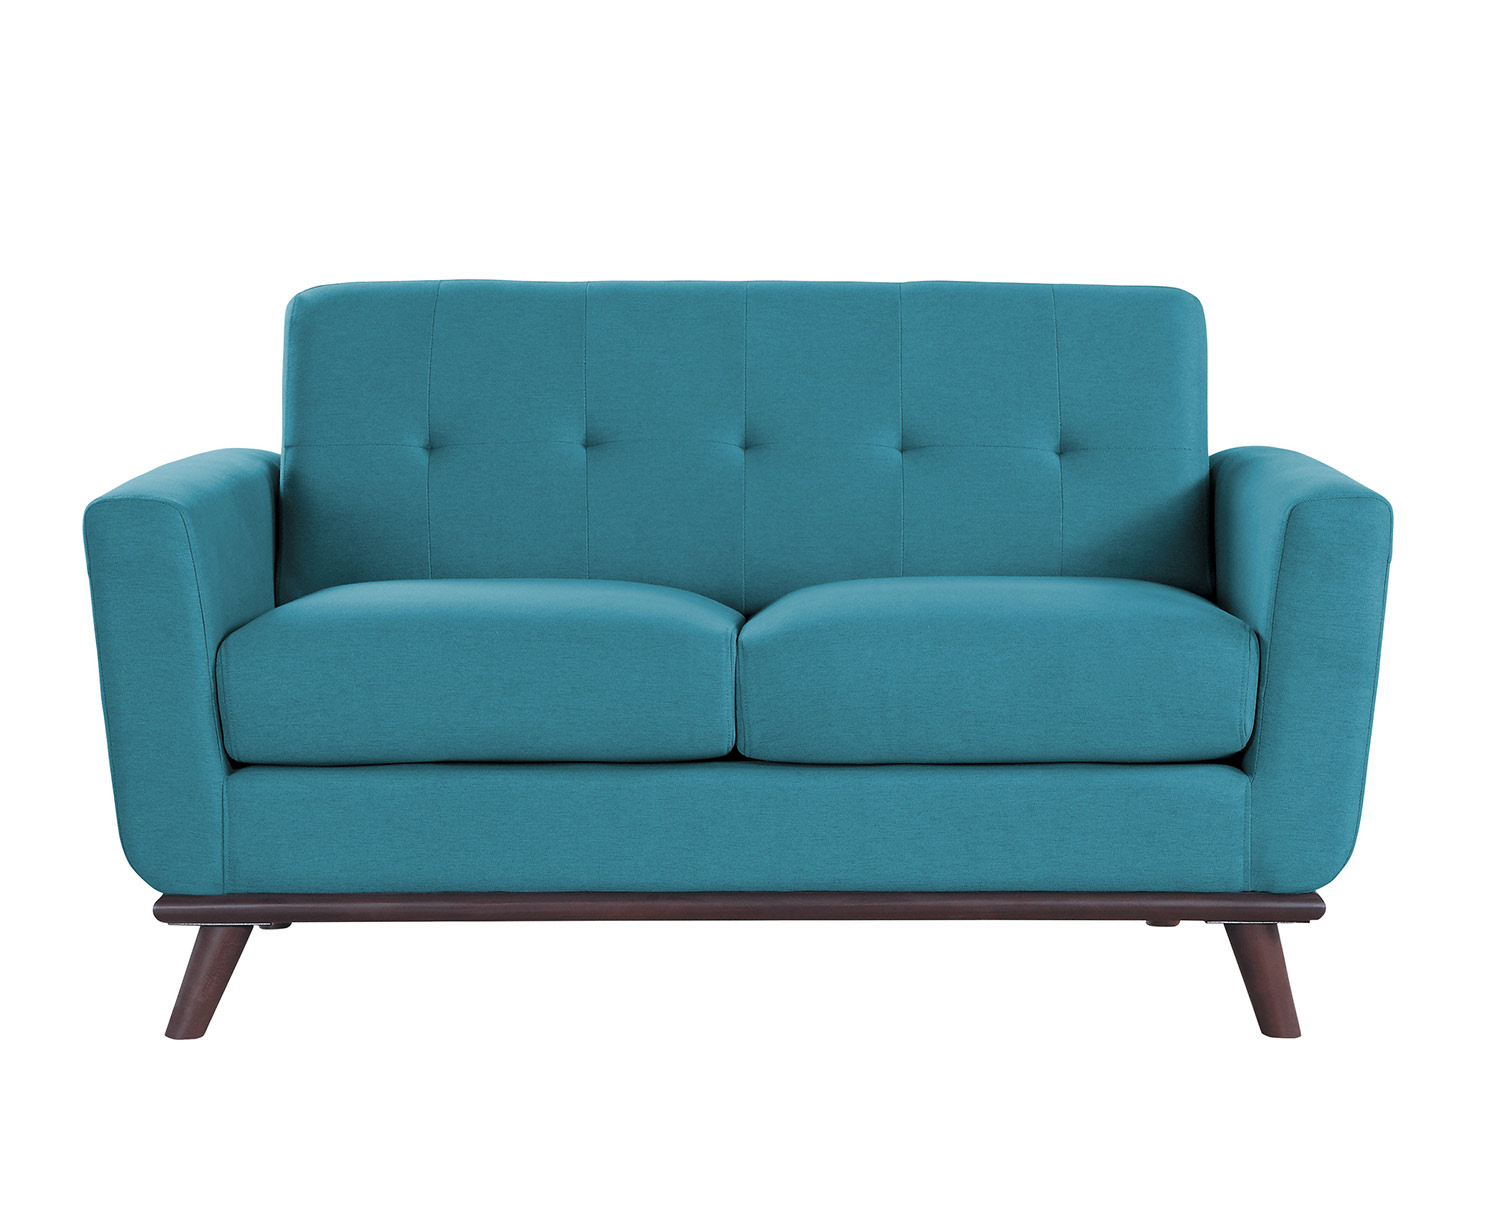 Homelegance Rittman Love Seat - Blue